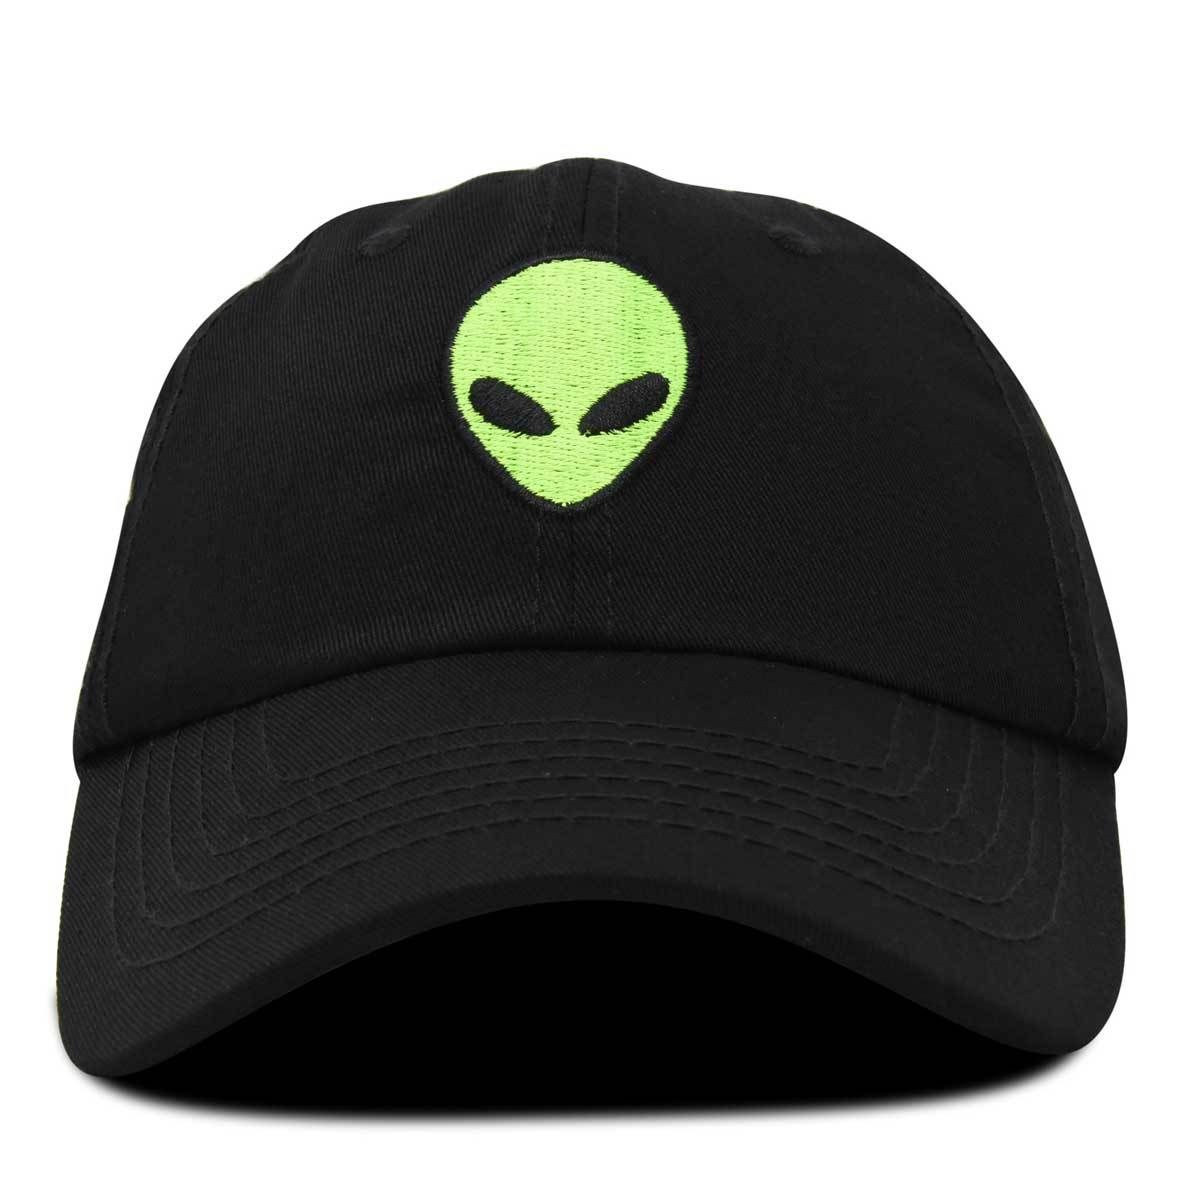 Alien Head Aliens UFO Embroidered Hat 4 Colors